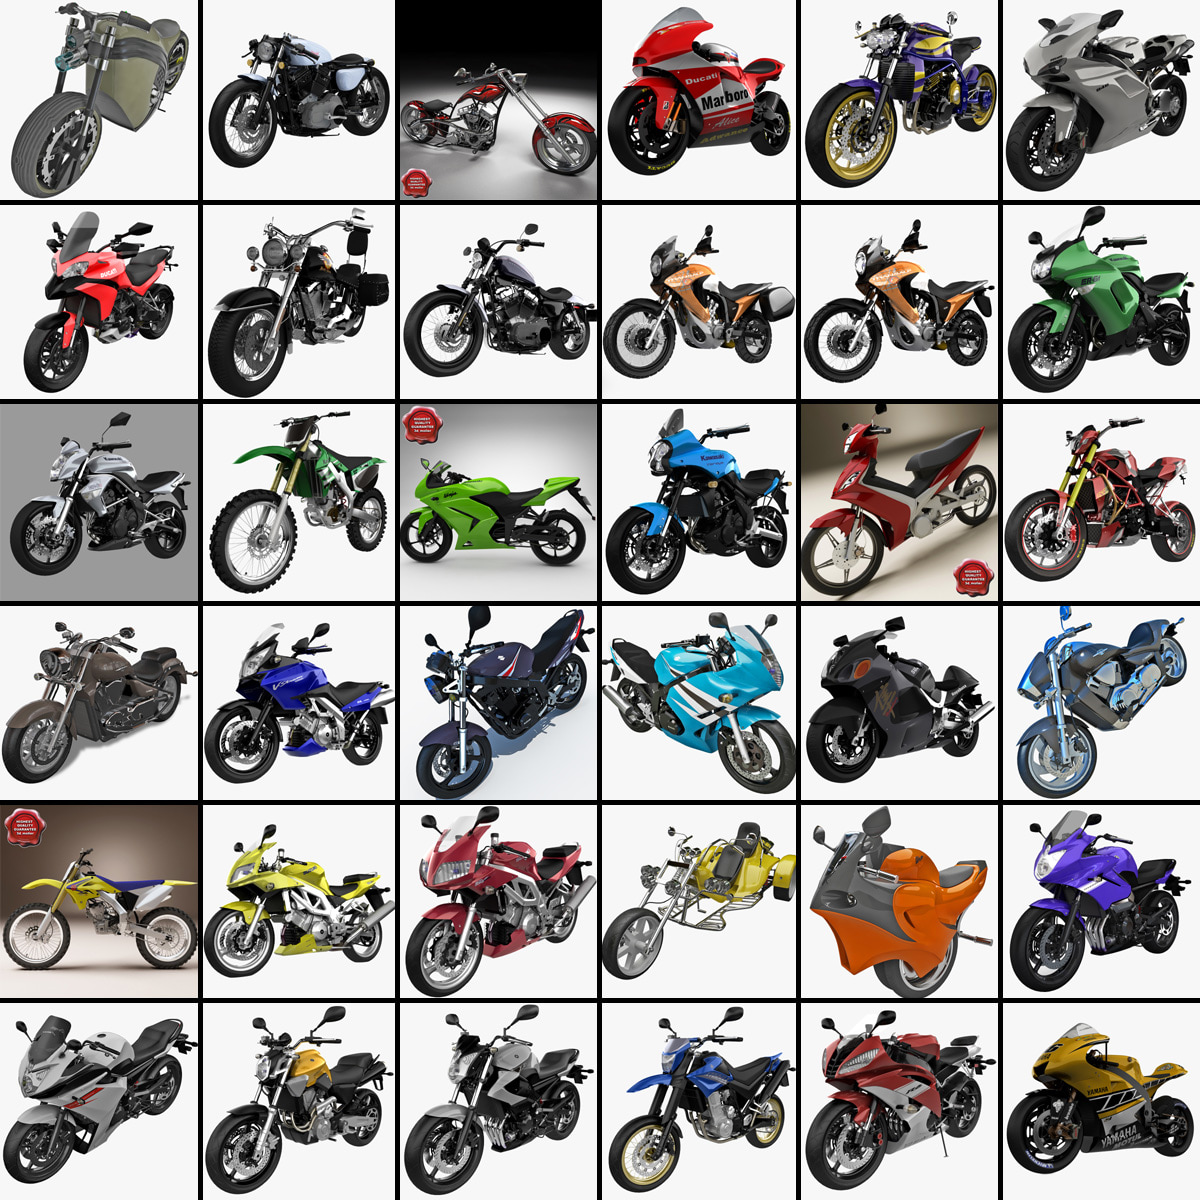 Moto Collection 19.jpg